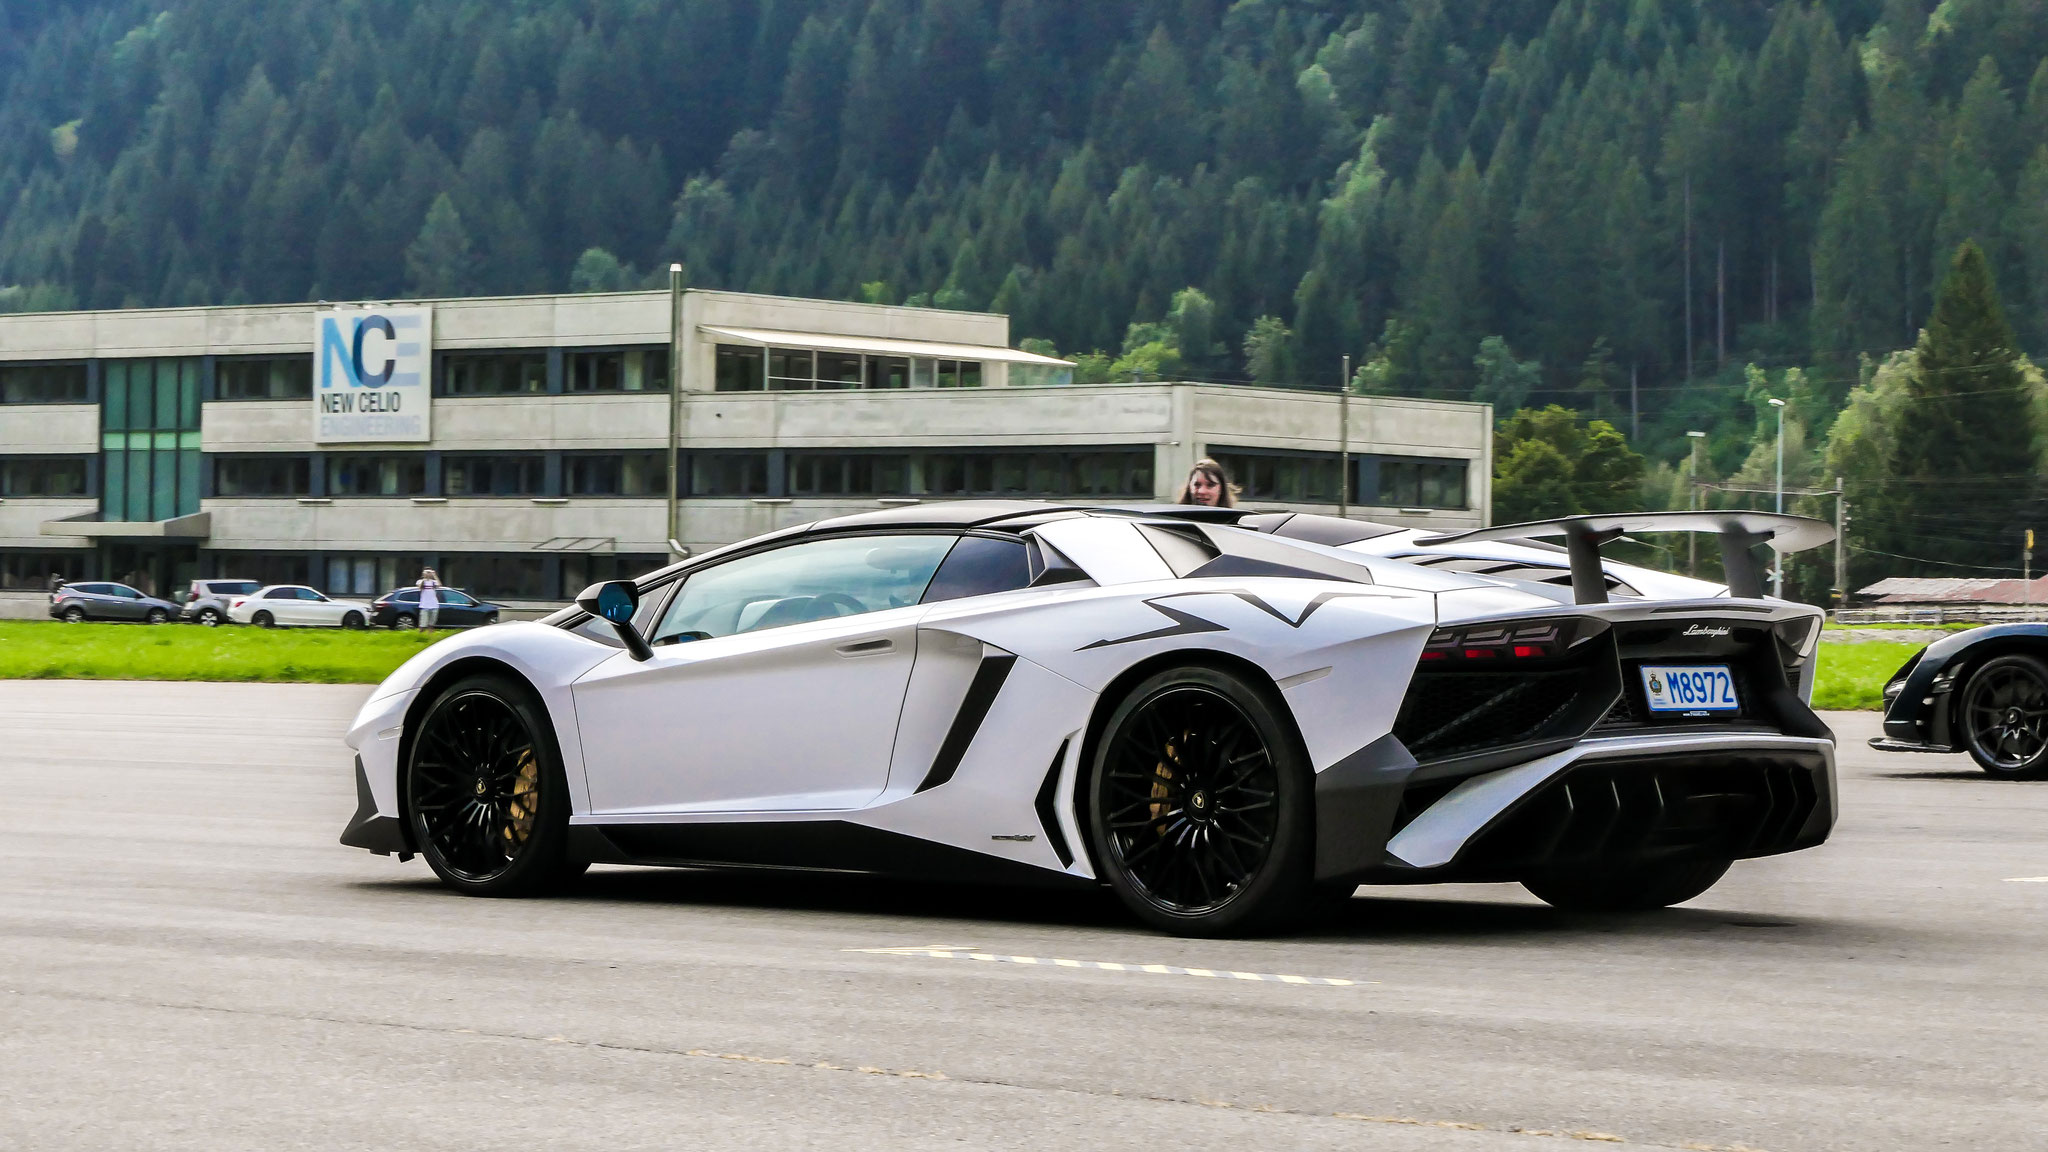 Lamborghini Aventador LP-750-4 SV Roadster - M8972 (AND)